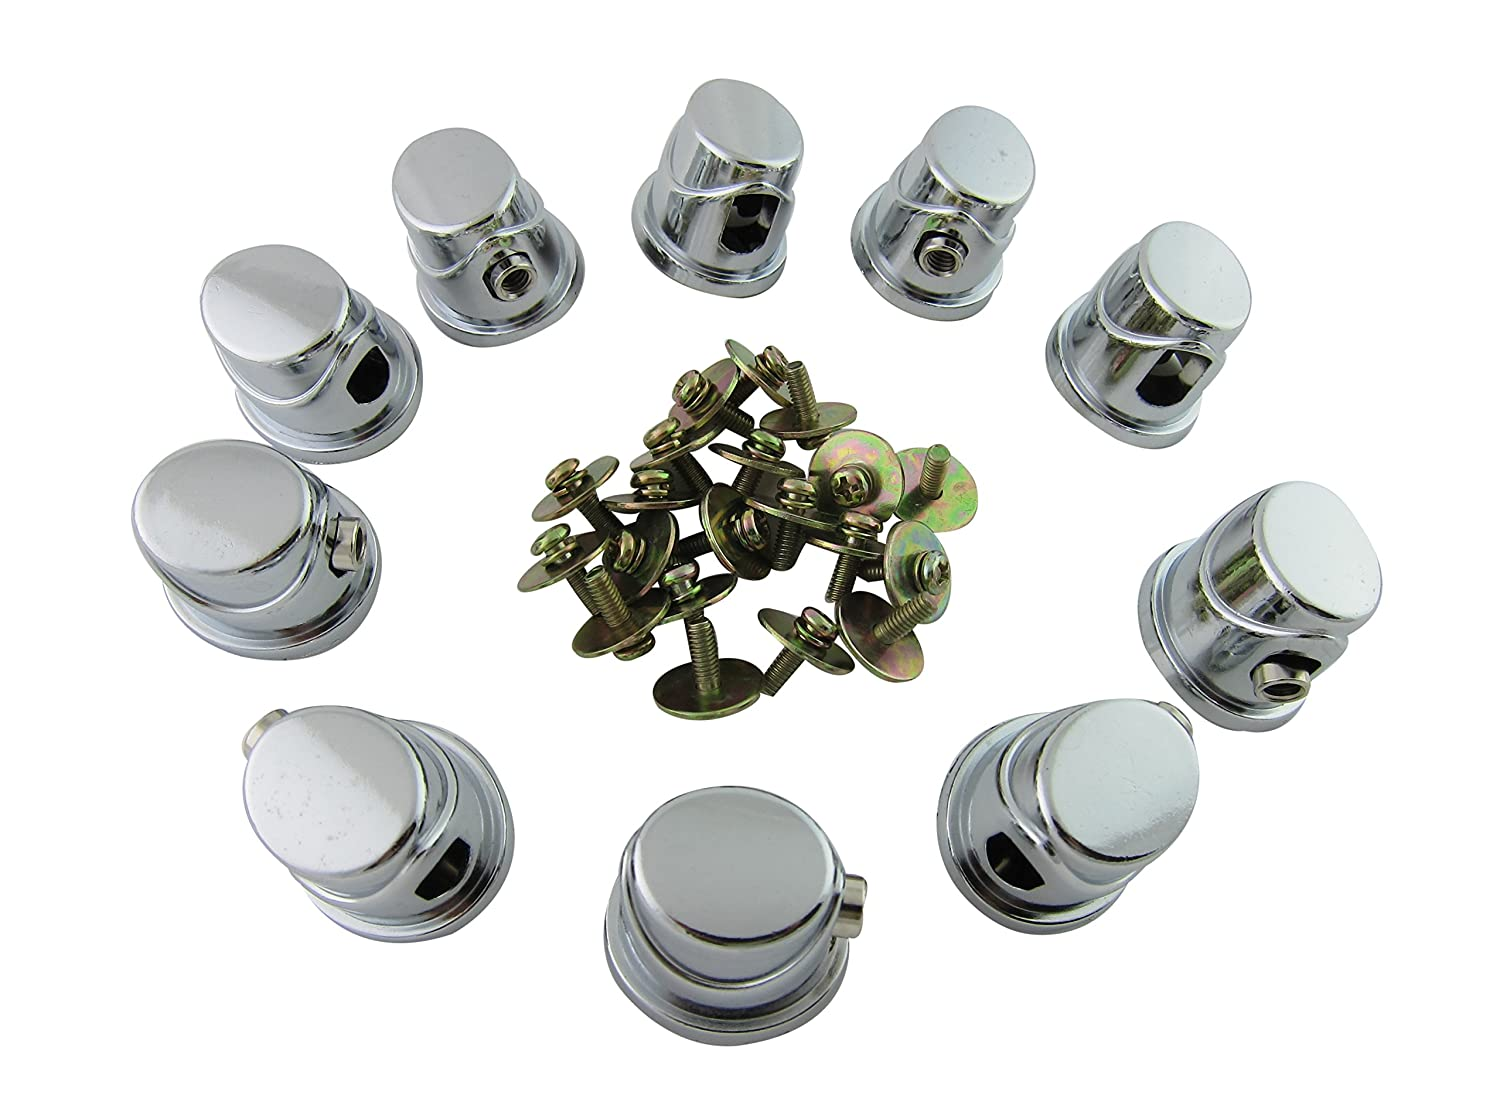 Goedrum Pack of 10 Single End Tom / Bass Drum Lugs with Mounting Screws Goe-9552